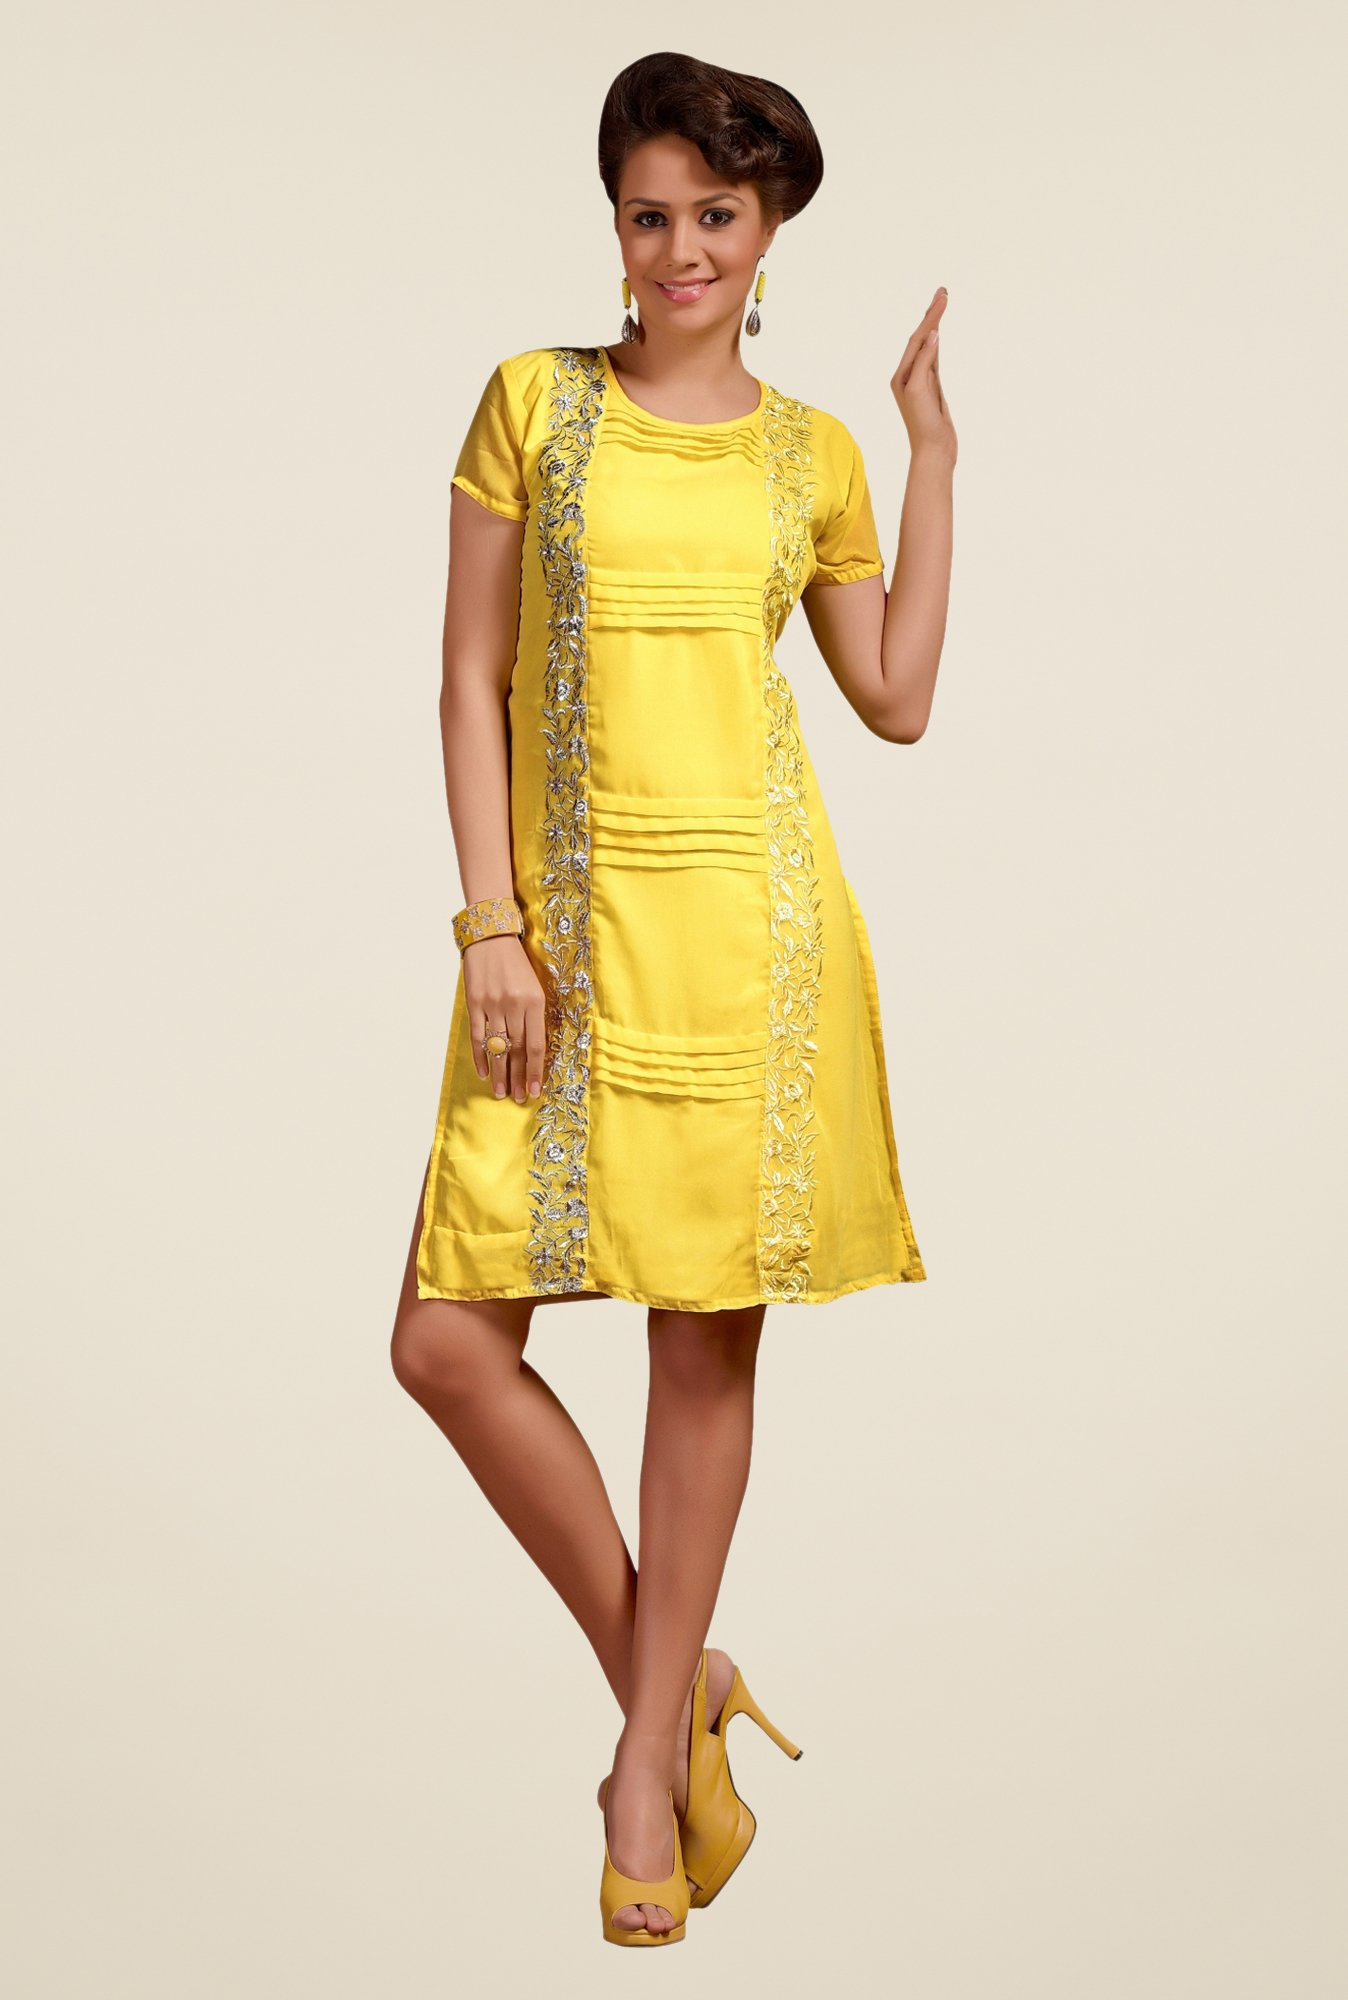 Triveni Yellow Embroidered Round Neck Kurti